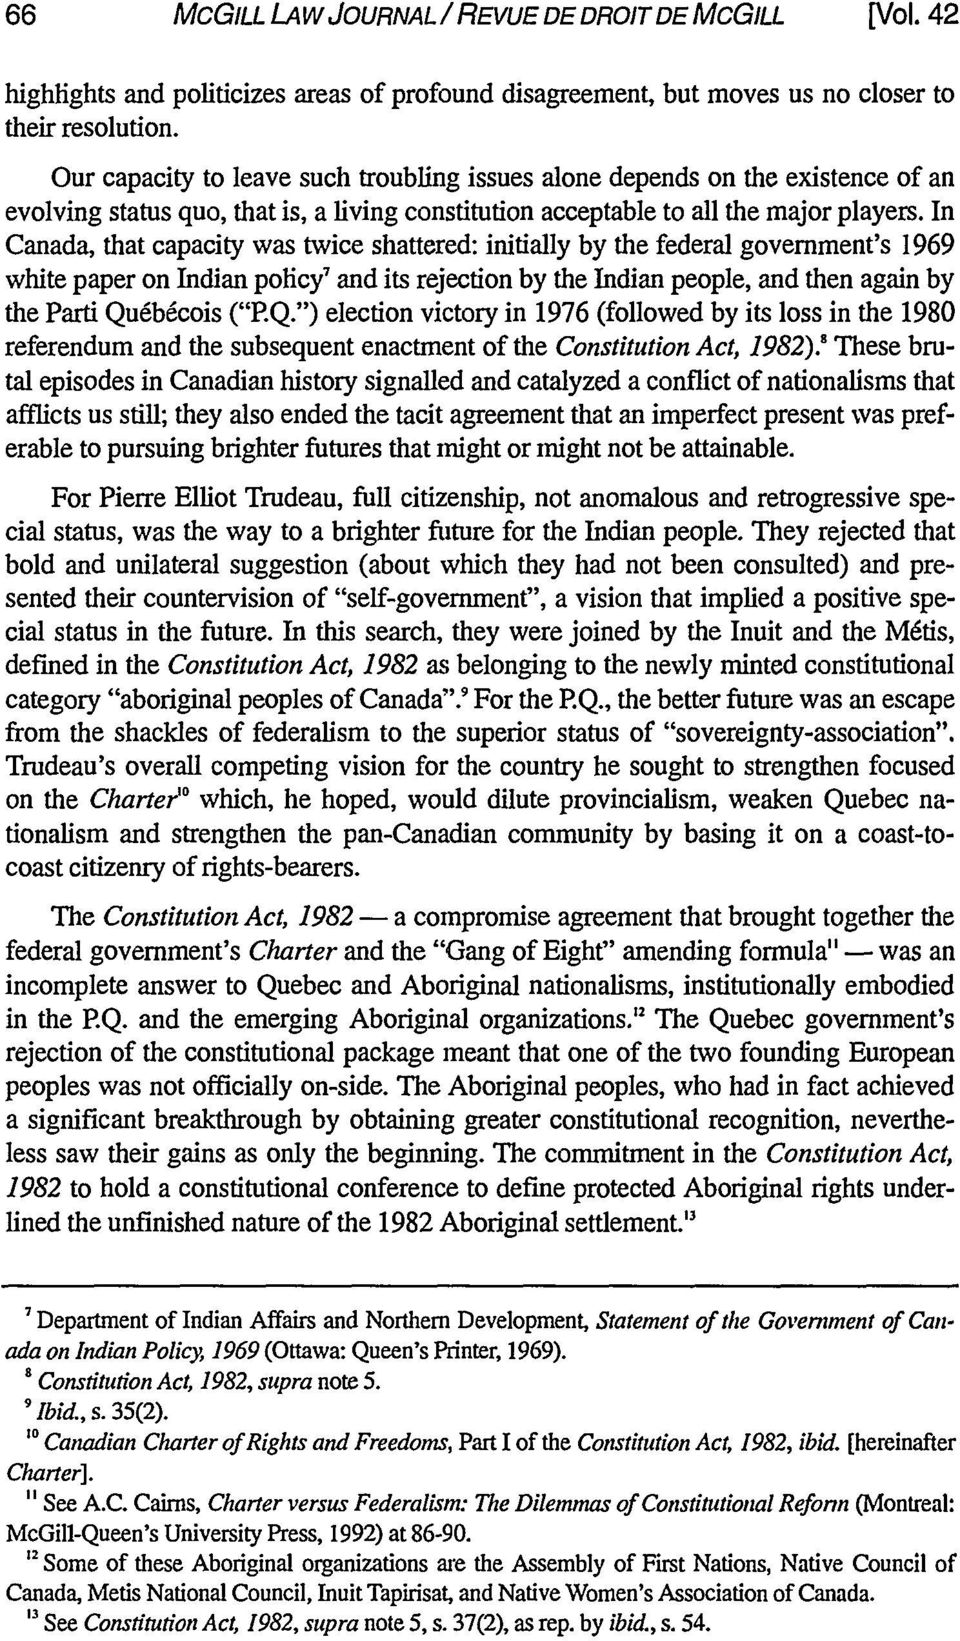 "In Canada, that capacity was twice shattered: initially by the federal government's 1969 white paper on Indian policy' and its rejection by the Indian people, and then again by the Pard Qu6b6cois (""P."